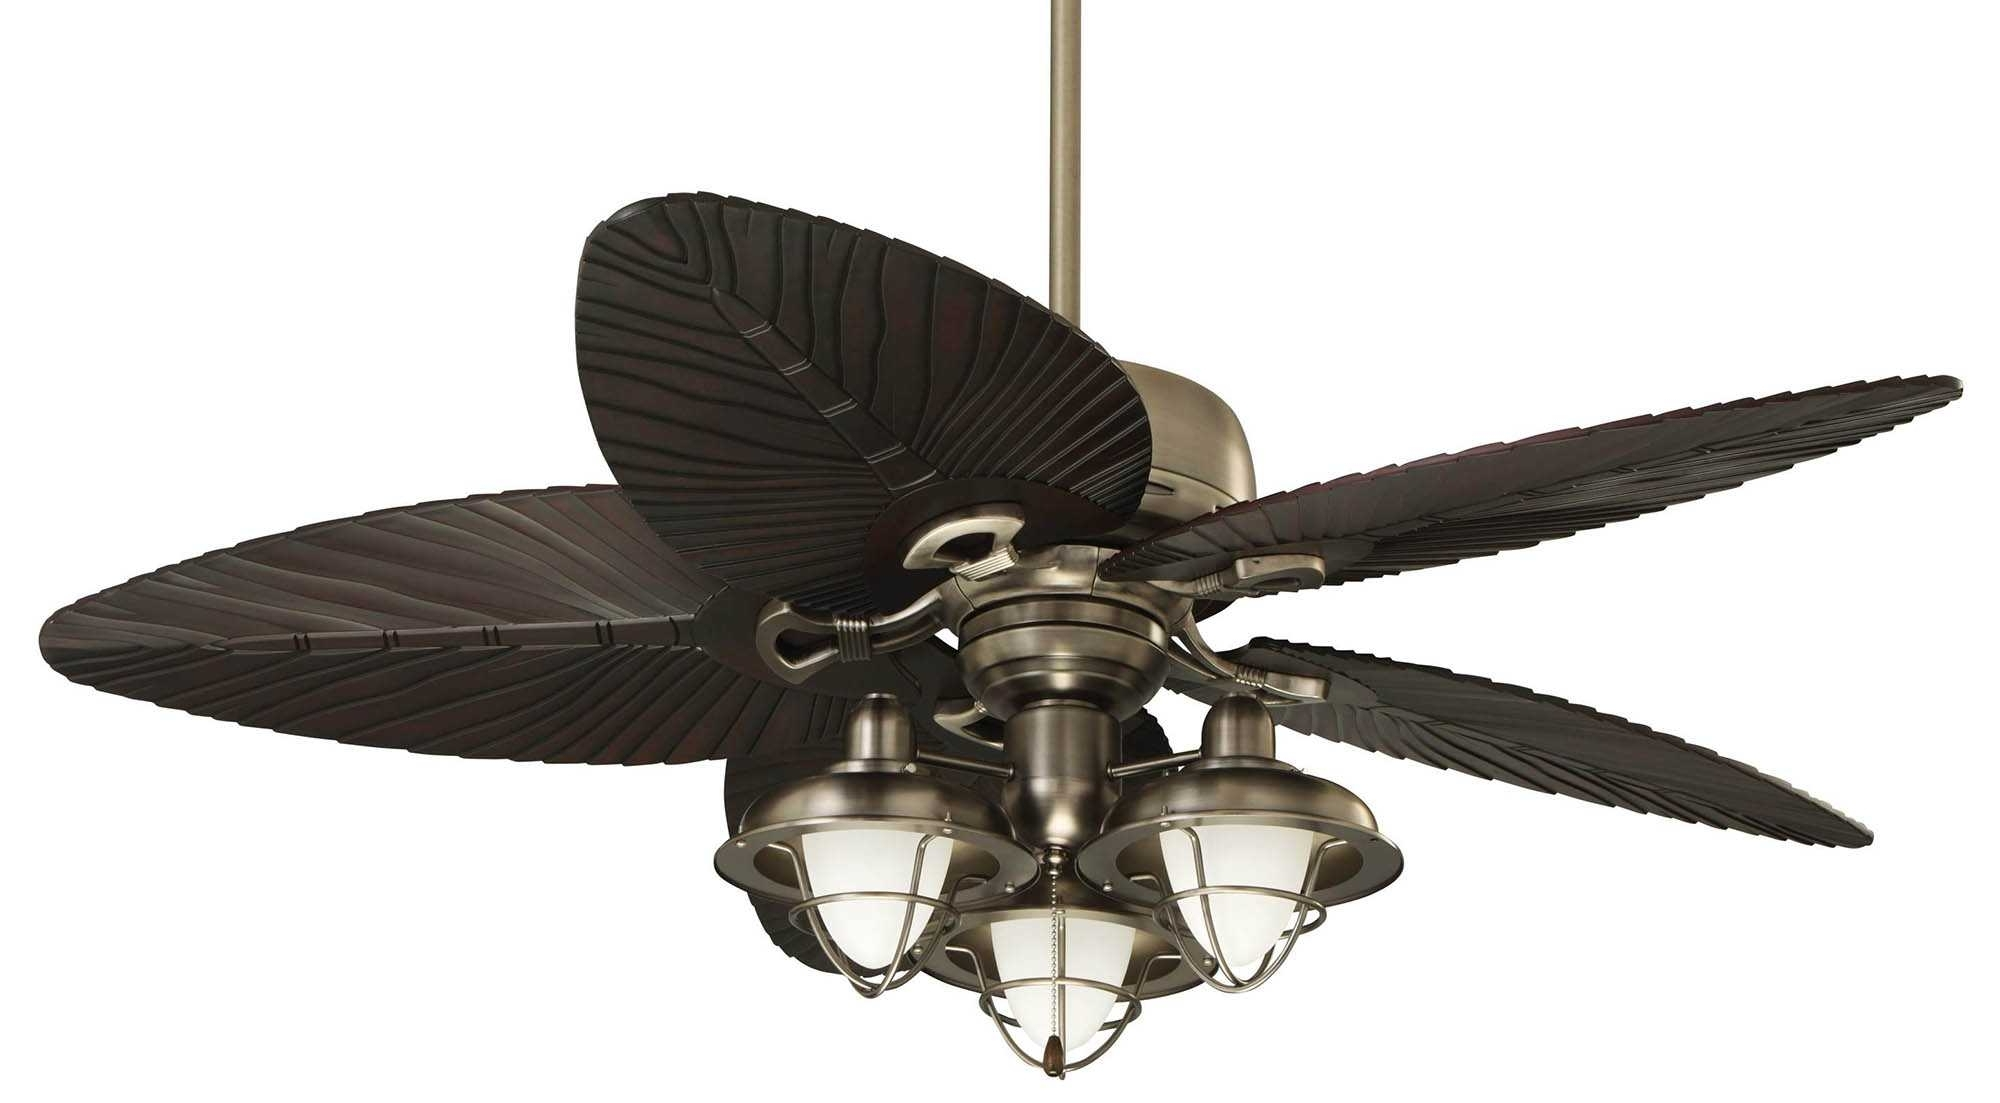 Ceiling Fan ~ Tropical Outdoor Ceiling Fans Withts Gallery Palm Leaf Regarding Most Current Outdoor Ceiling Fans With Tropical Lights (View 11 of 20)